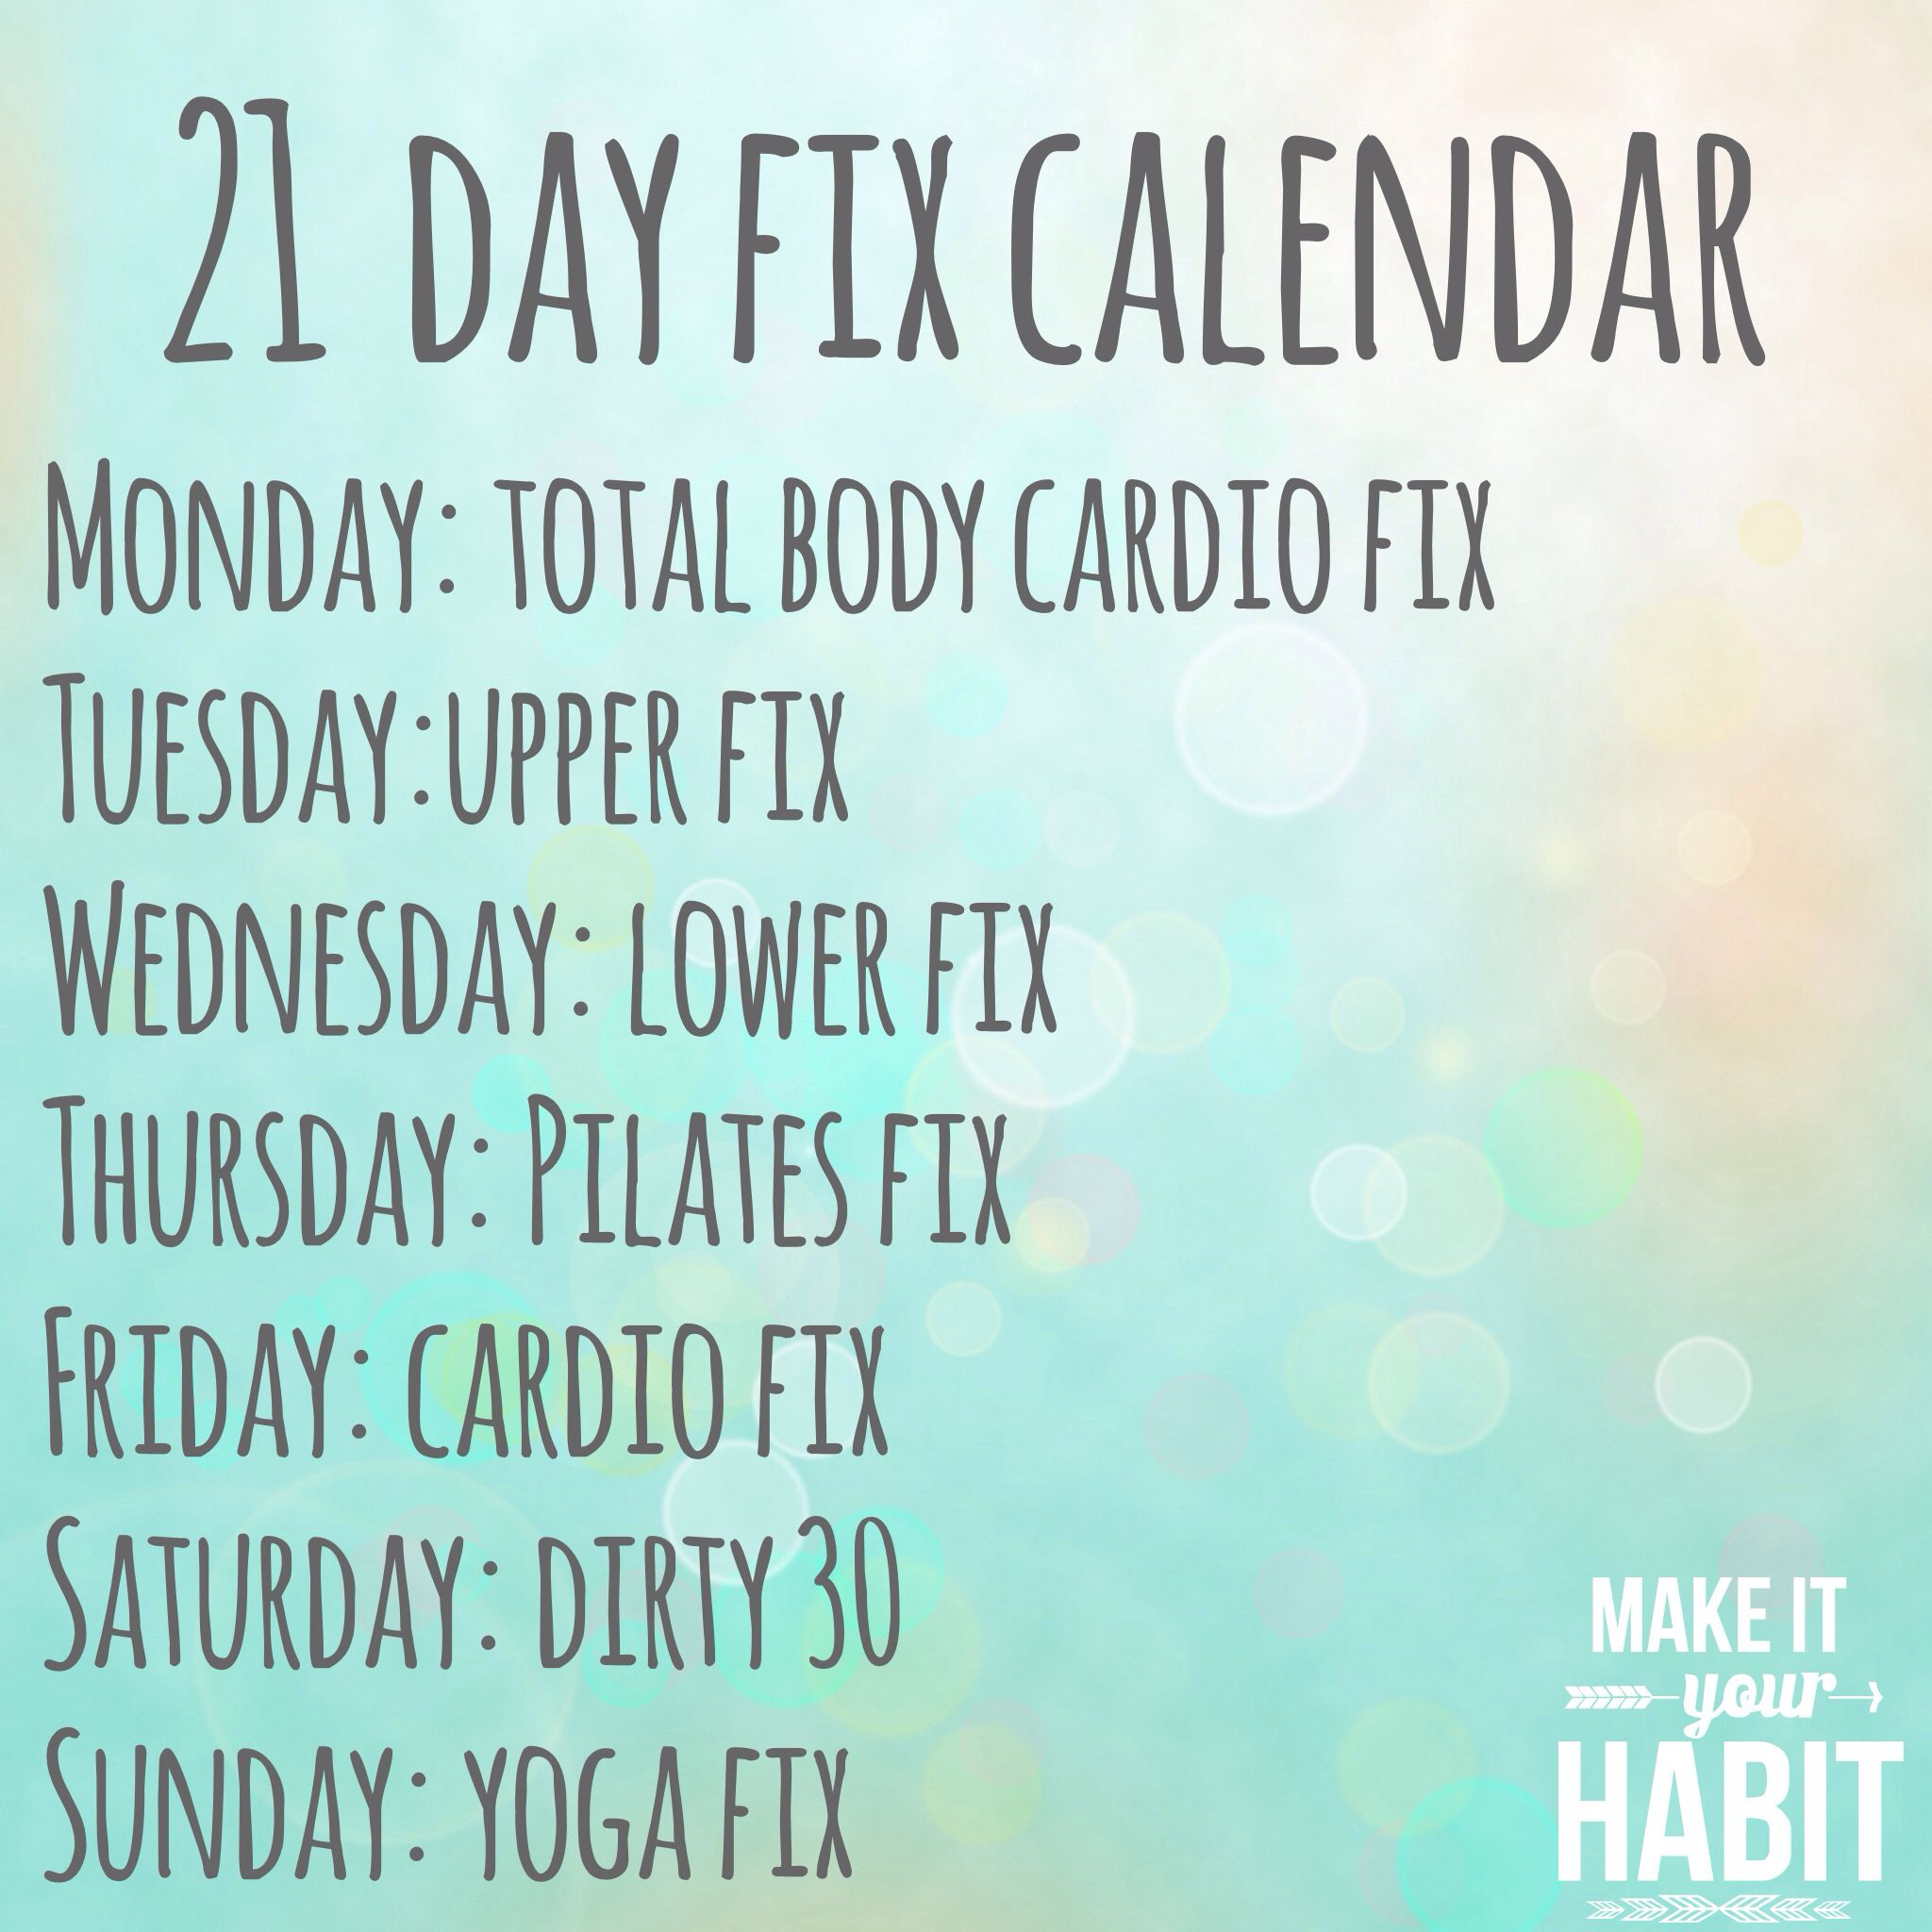 Douchebag Gym Quotes: 21 Day Fix Workout Schedule! #GetYourFix #21DFX